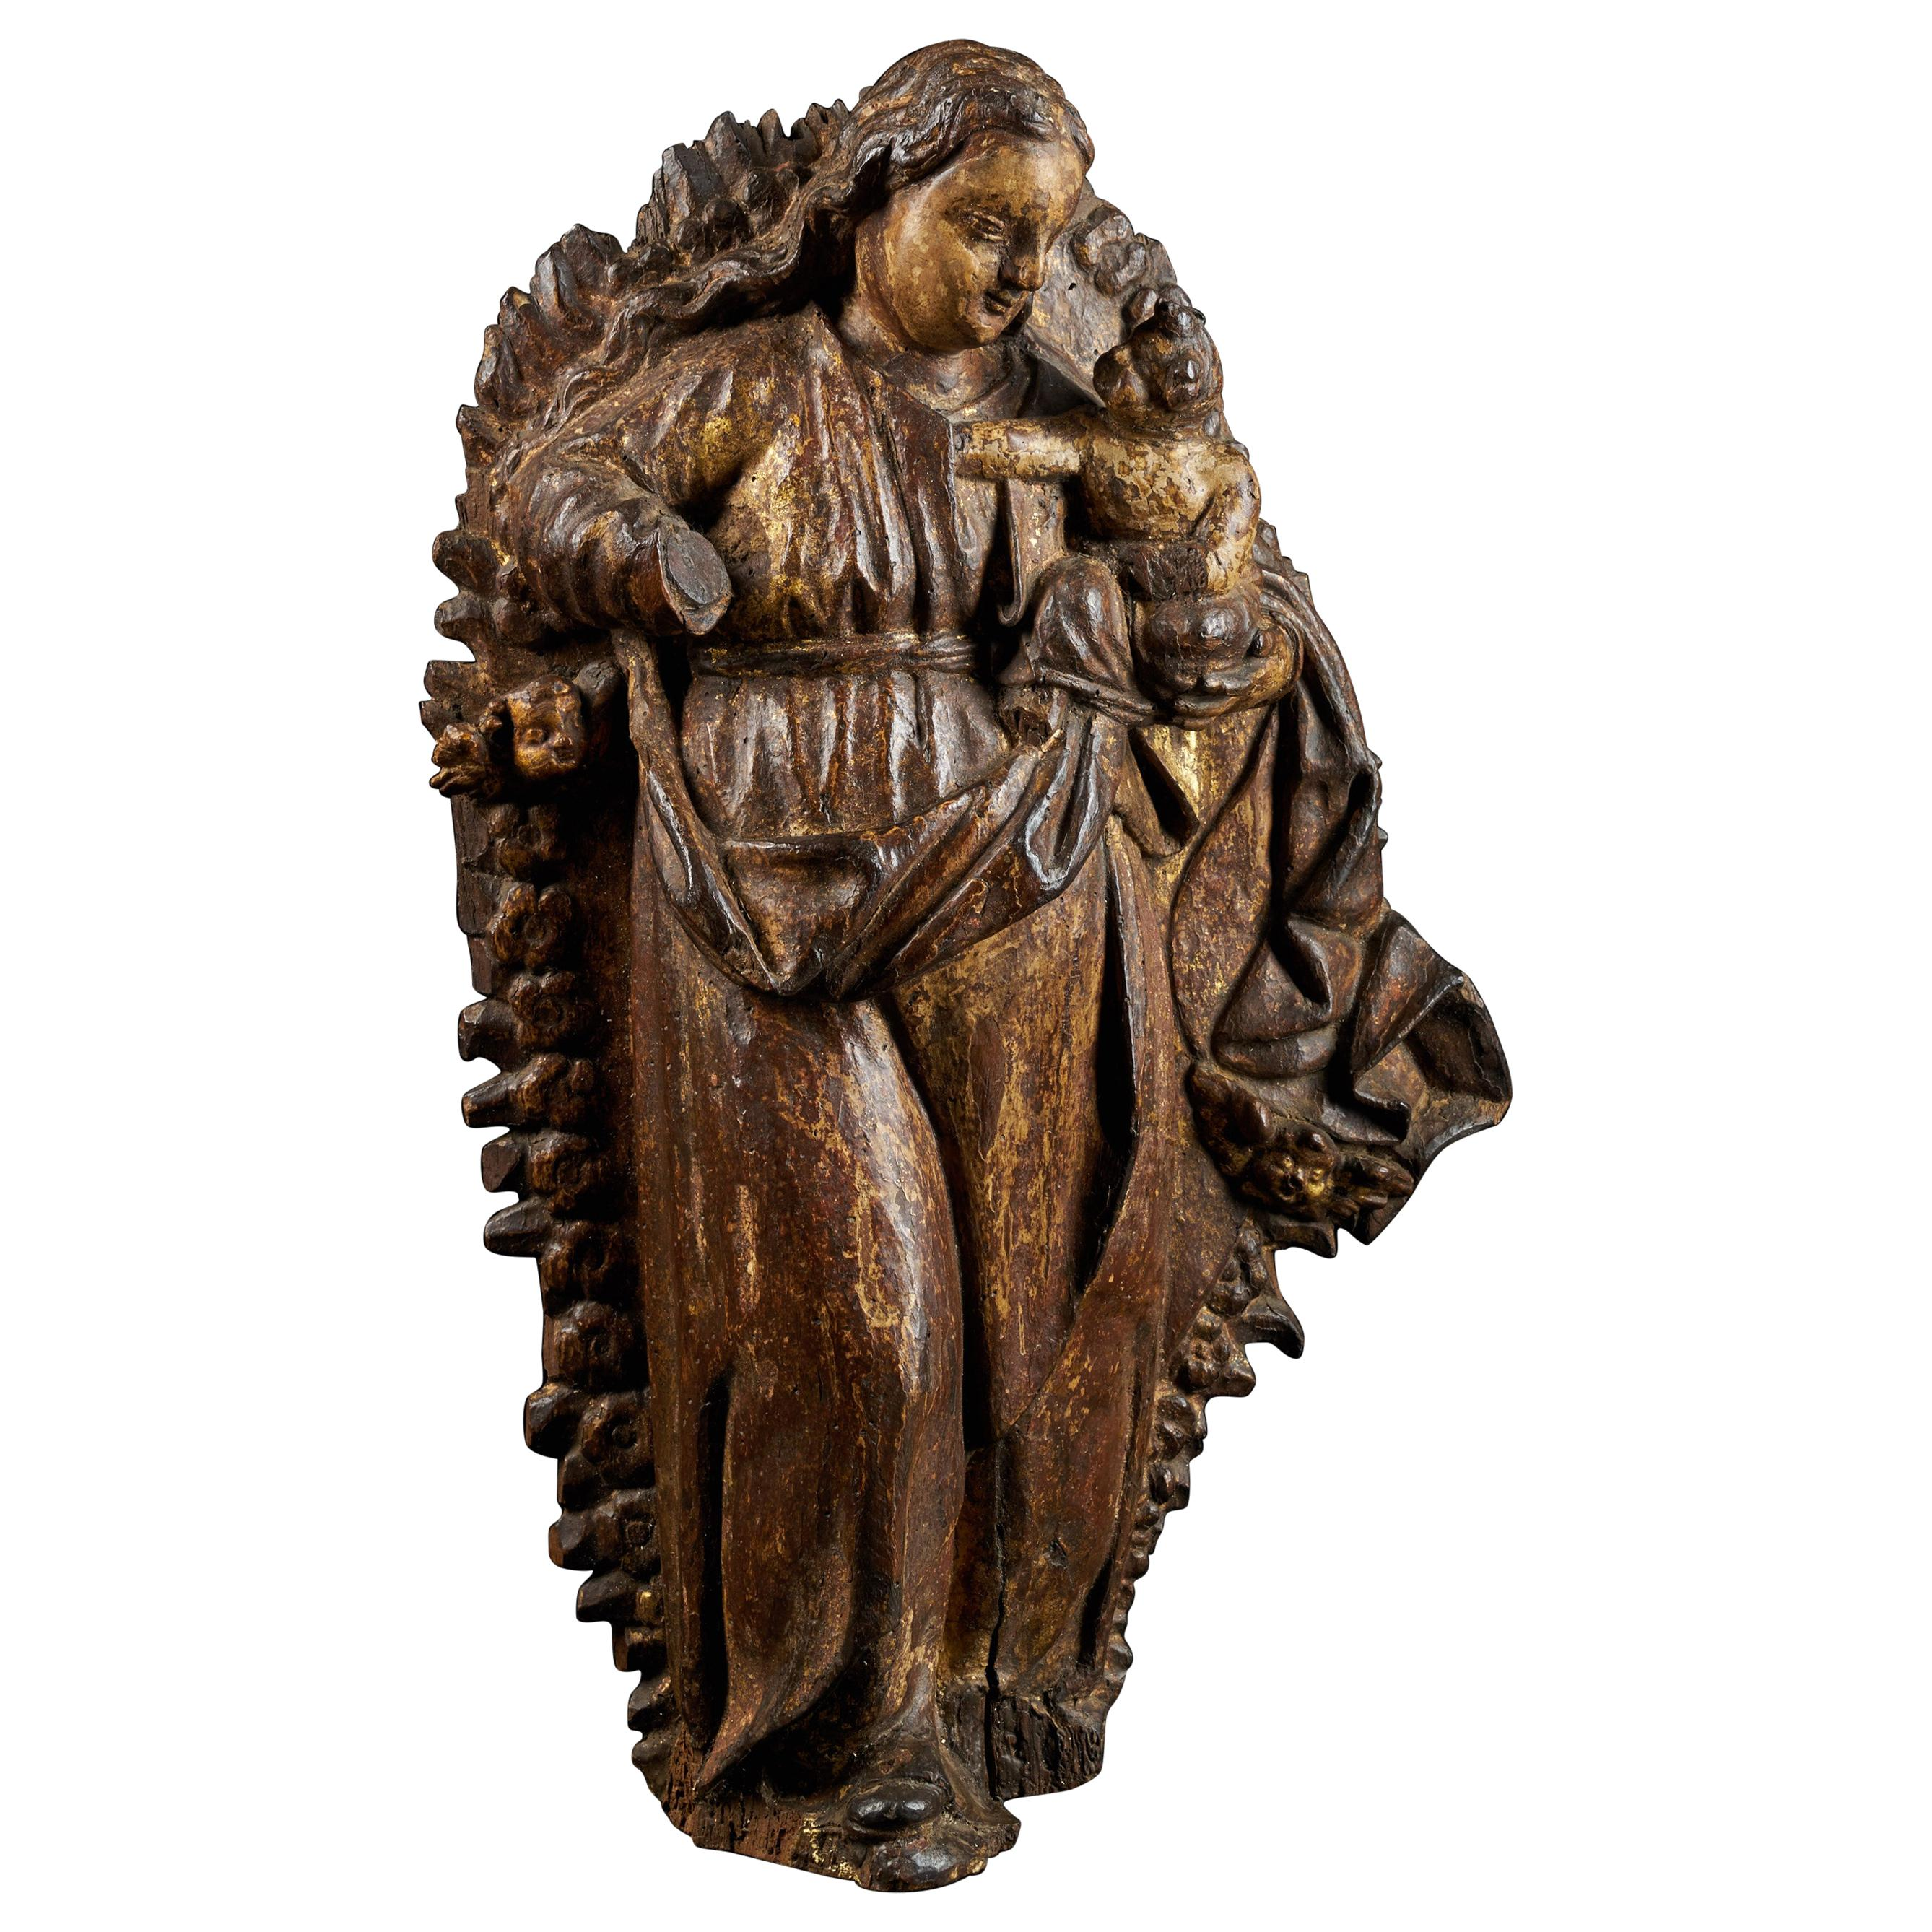 Spanish Shool, Gilded Wooden Relief Sculpture of a Virgin Carrying a Child